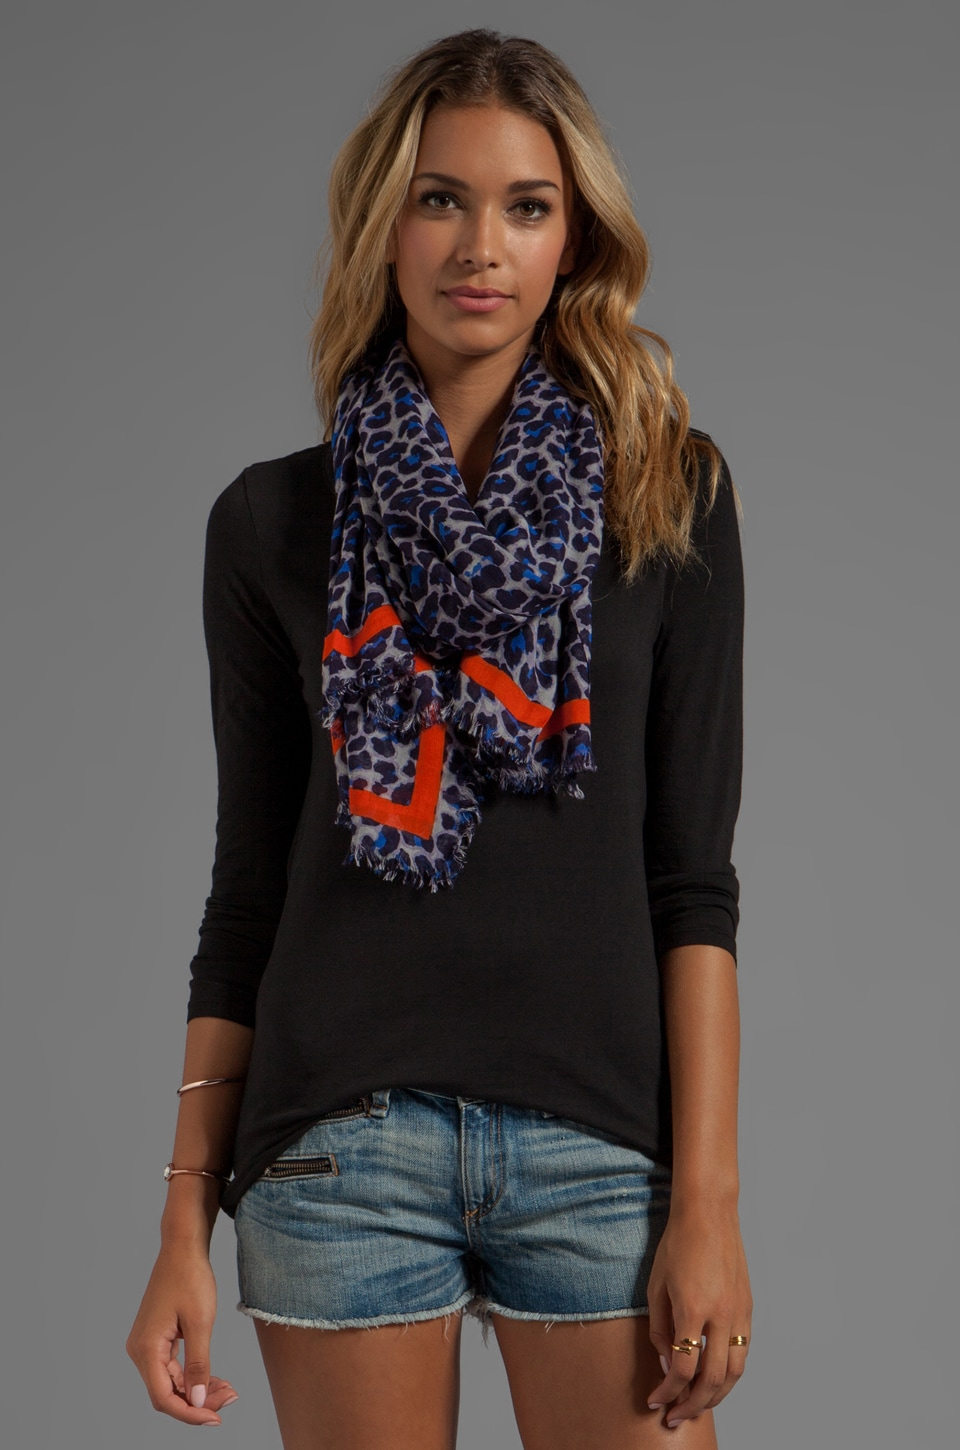 Marc by Marc Jacobs Leonora Leopard Scarf in Blue Multi